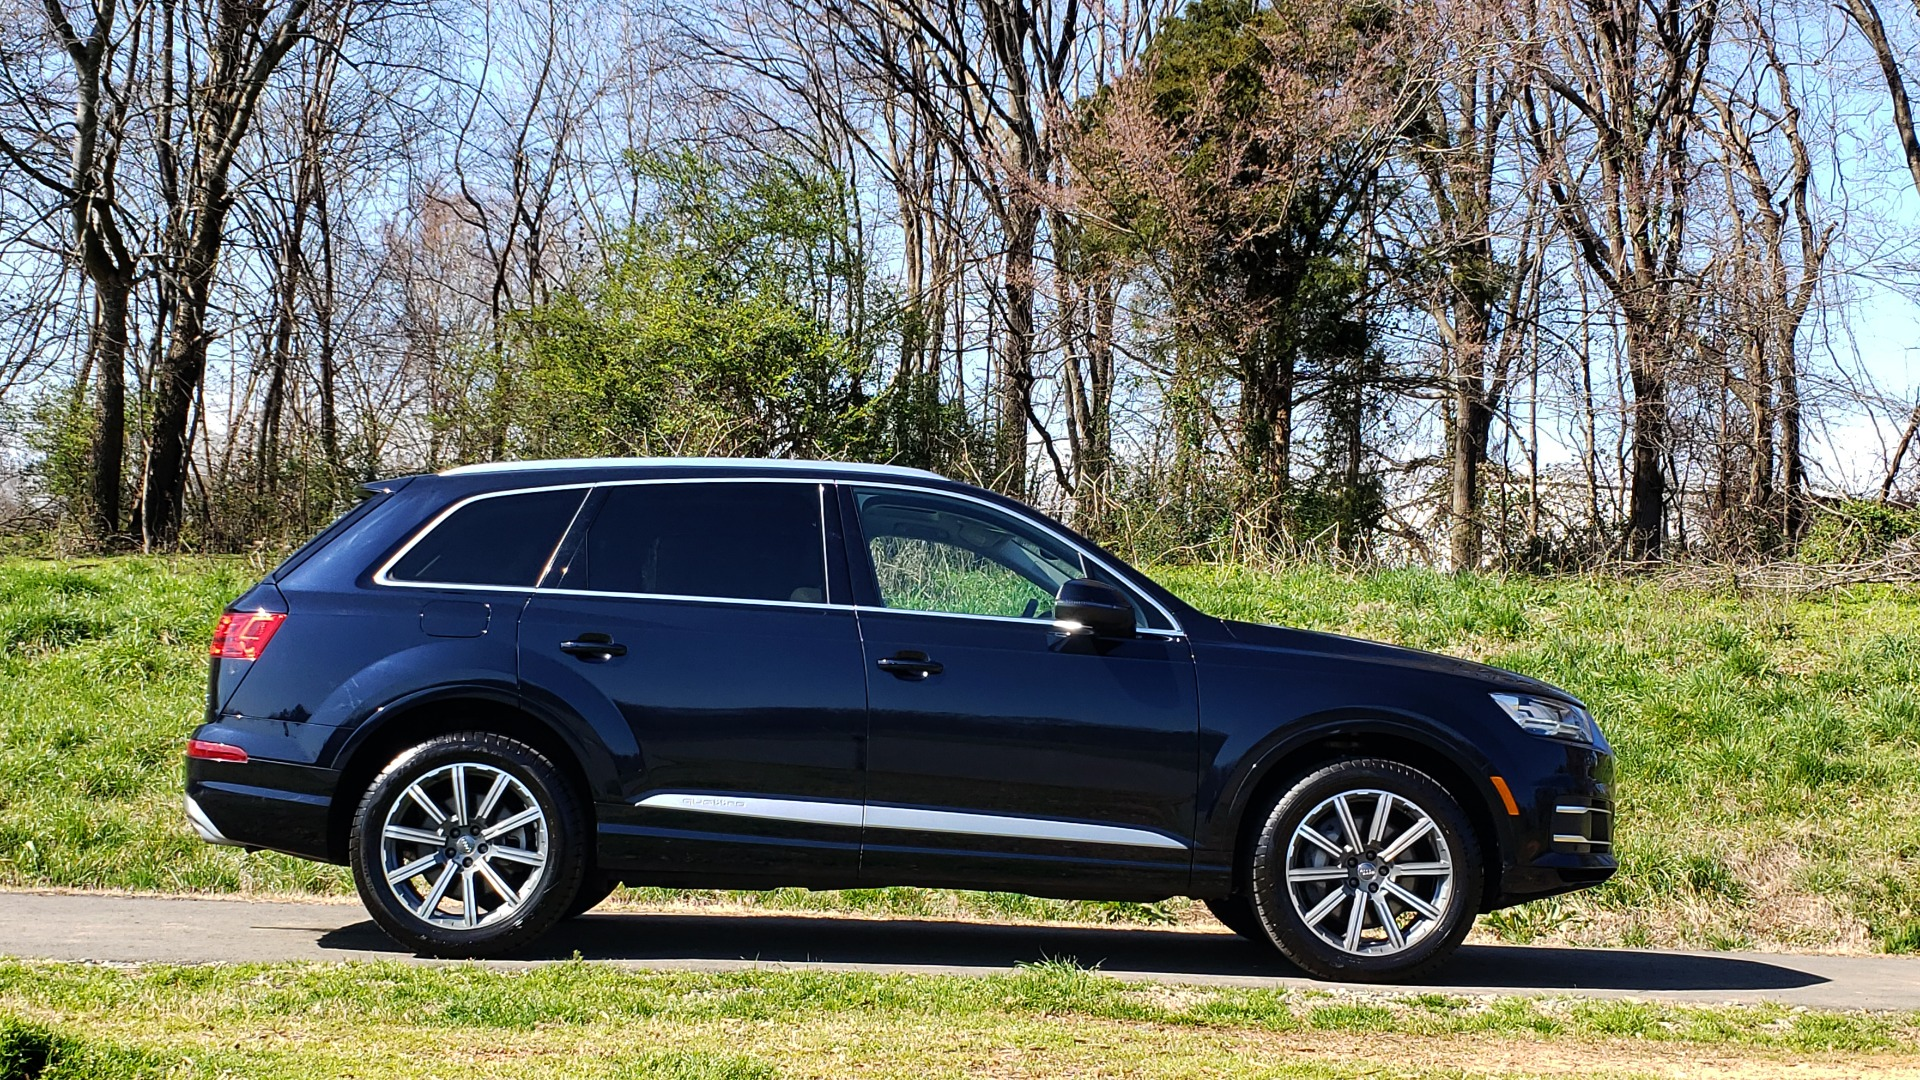 Used 2018 Audi Q7 PRESTIGE 3.0T CLD WTHR / NAV / BOSE / HEADS-UP / REARVIEW for sale Sold at Formula Imports in Charlotte NC 28227 5